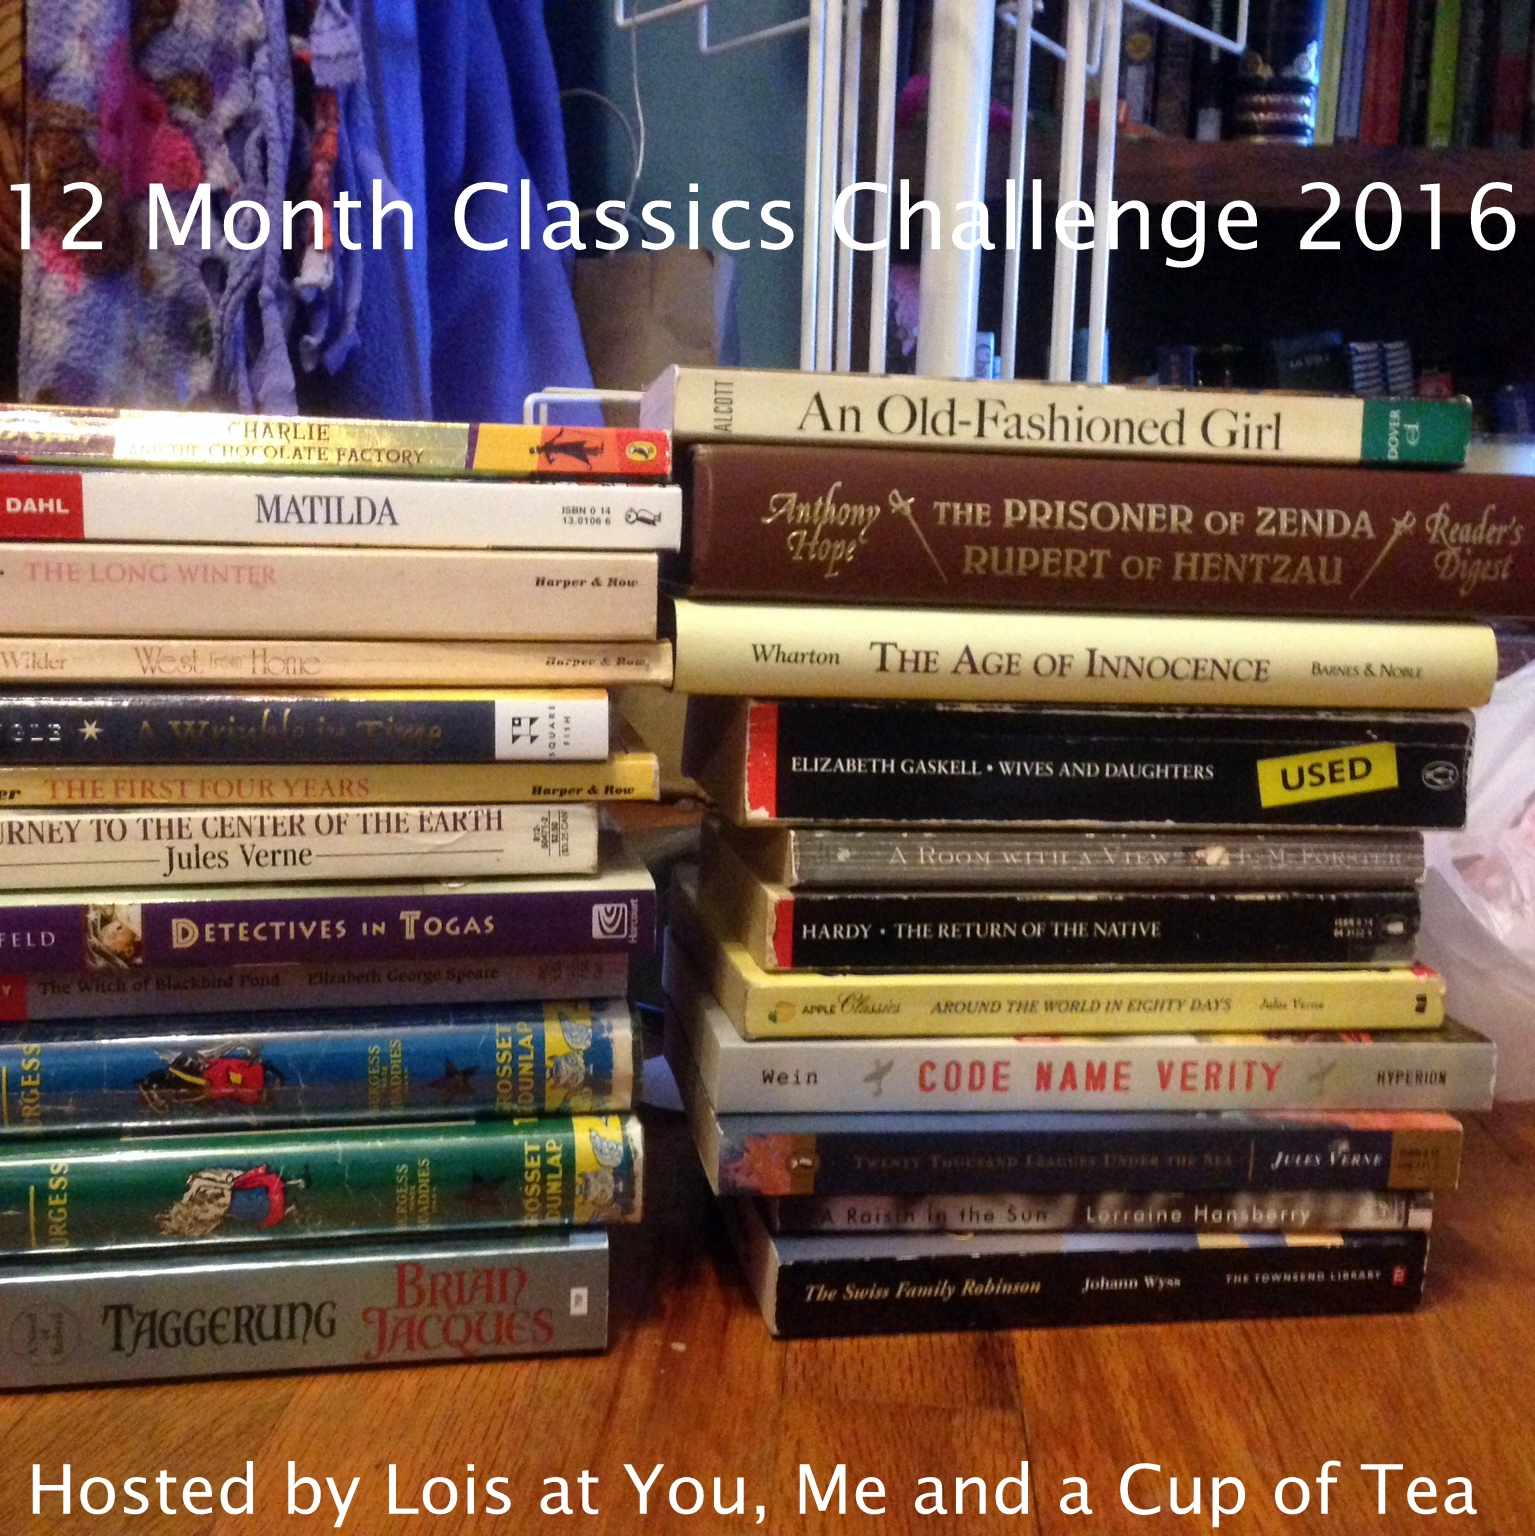 Sign up for the 2016 12 Month Classics Challenge